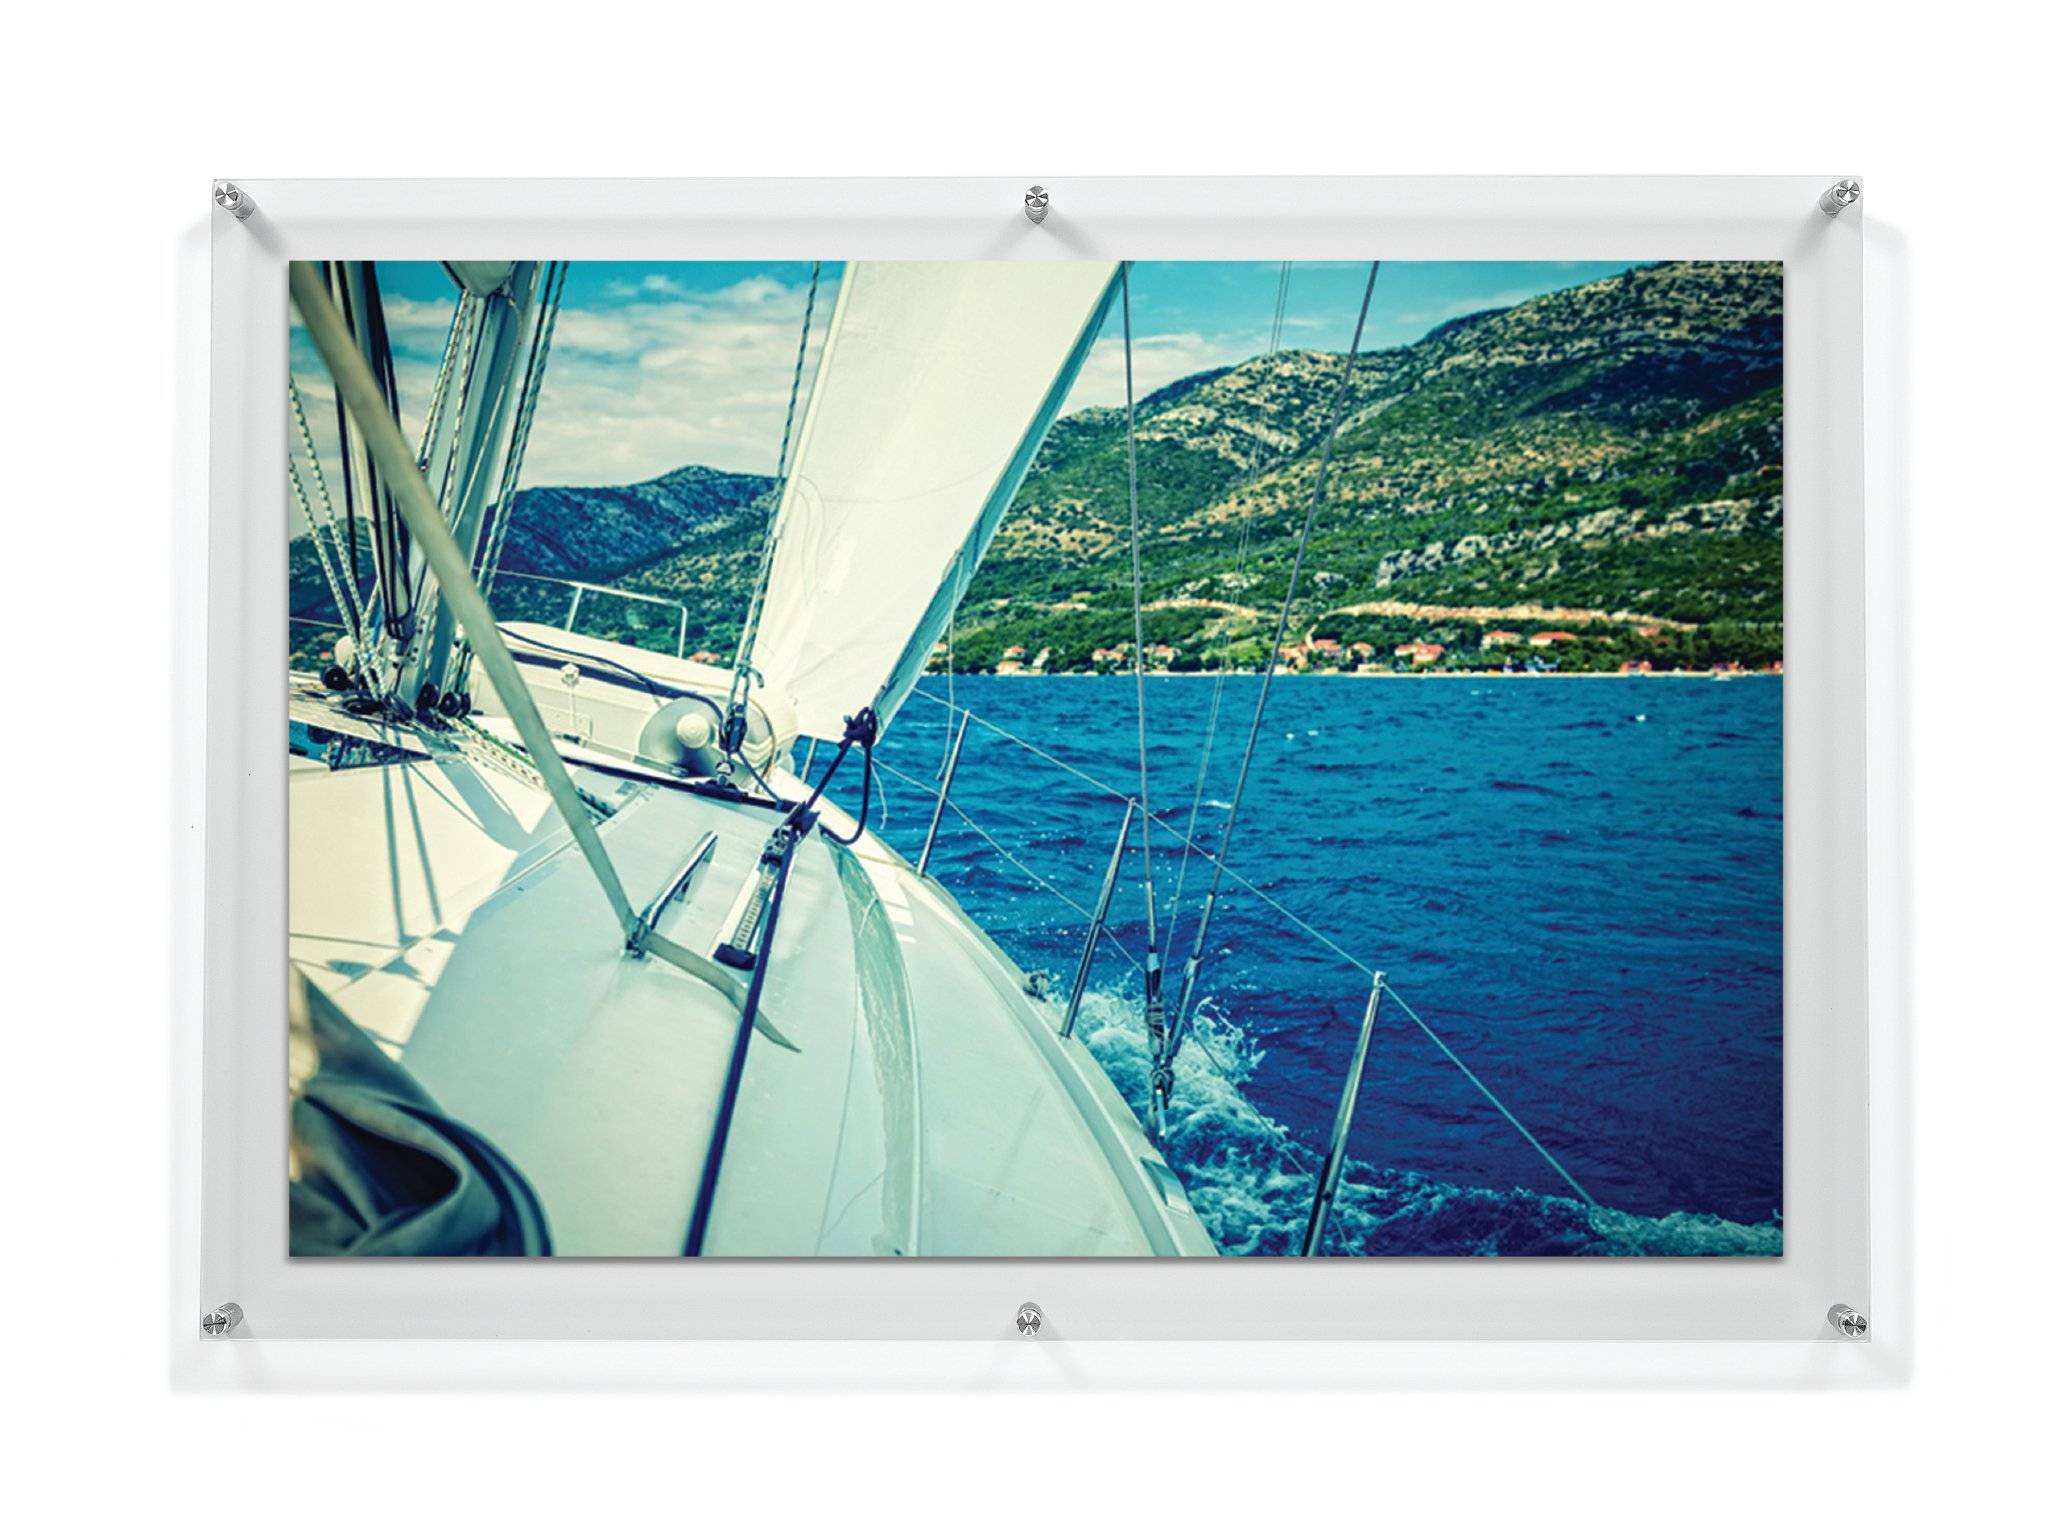 Wexel Art 28x40-Inch Double Panel Clear Acrylic Floating Frame for Up to 24x36 Art & Photos